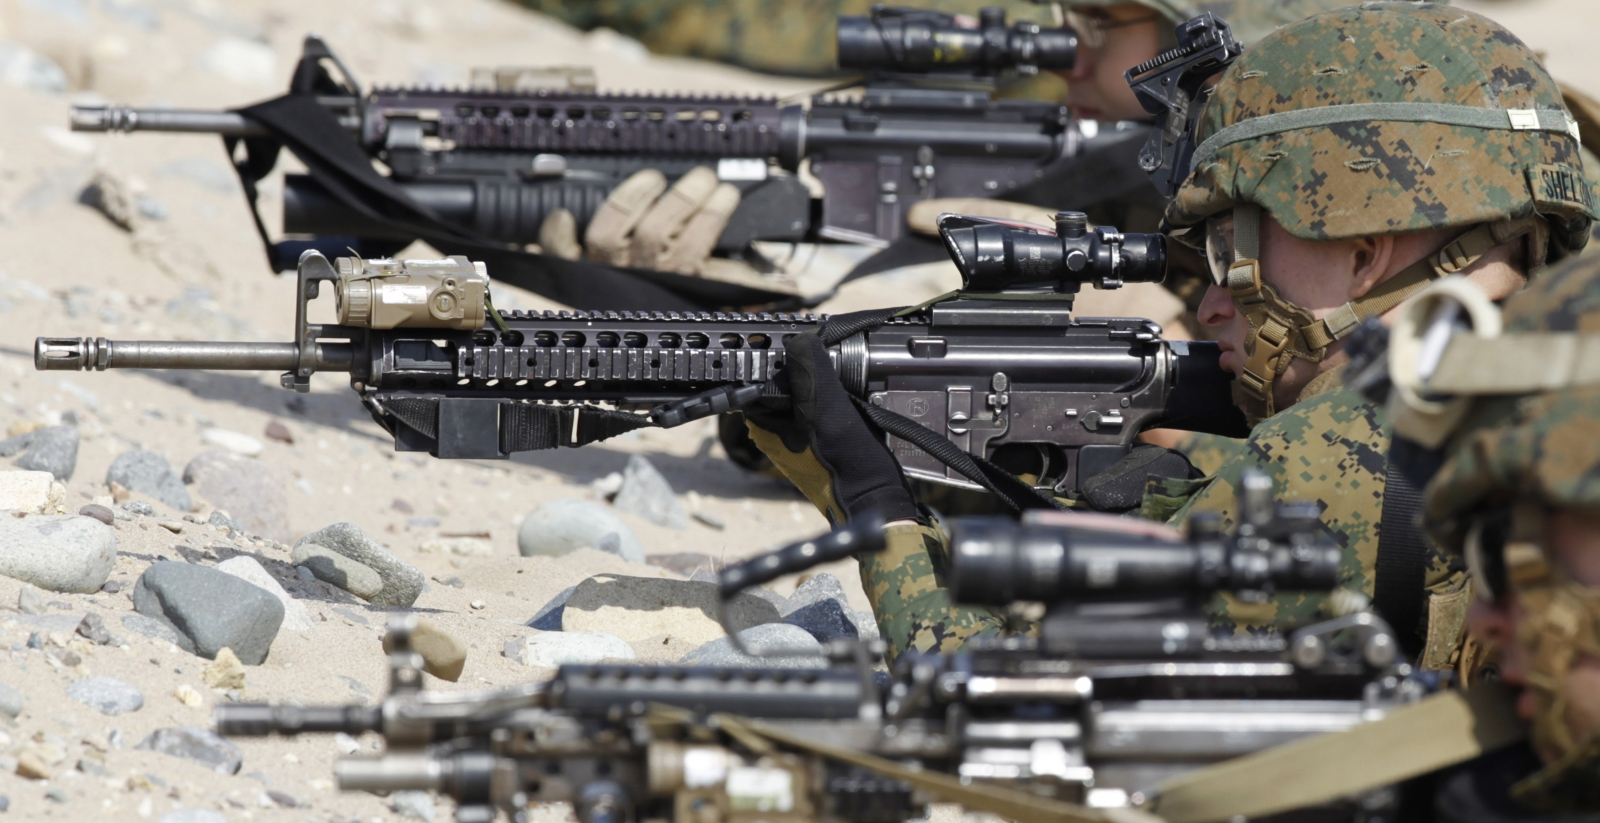 Several fire arms stolen from Panzer Kaserne US Army base ...